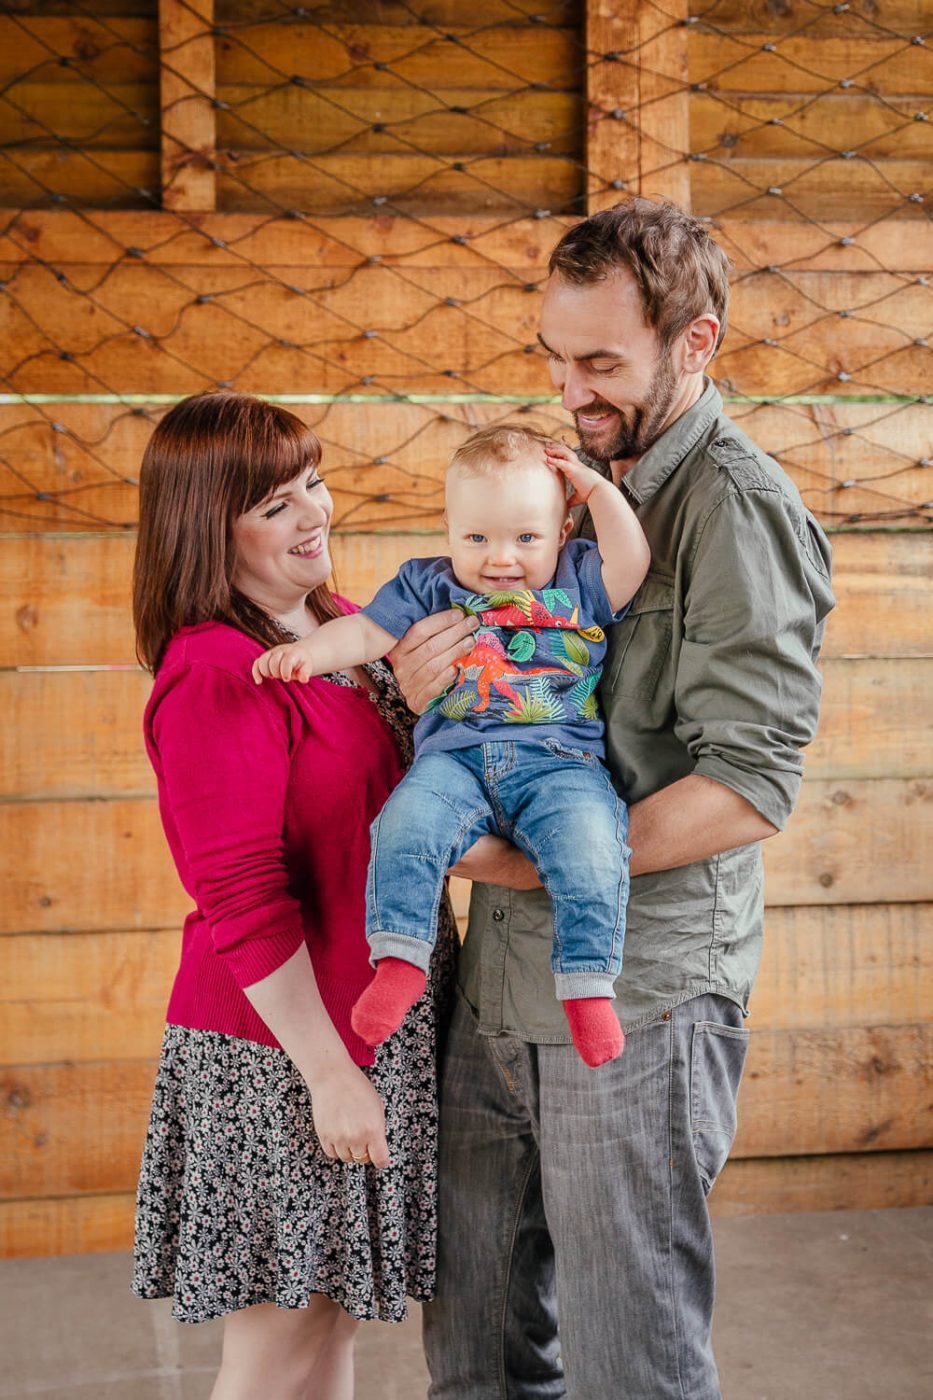 family photoshoot in barn Glasgow mum dad toddler smiling